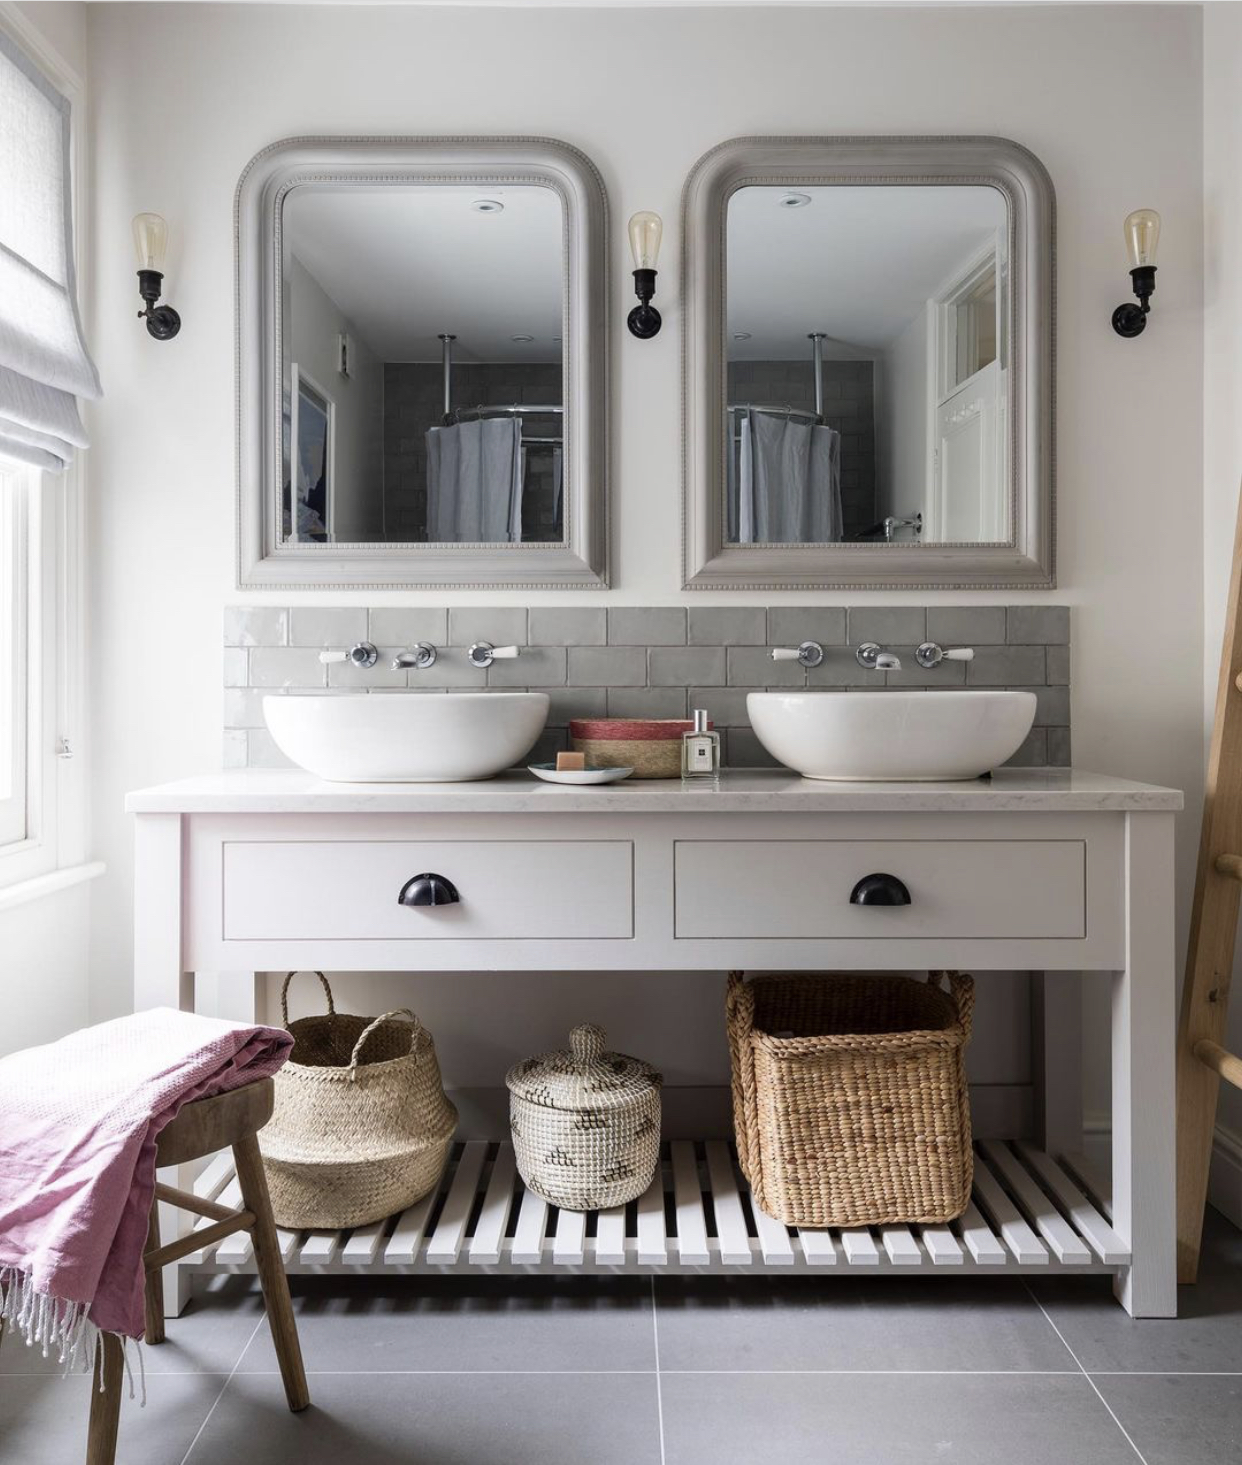 bathroom storage by Beth Dadswell of @imperfectinteriors